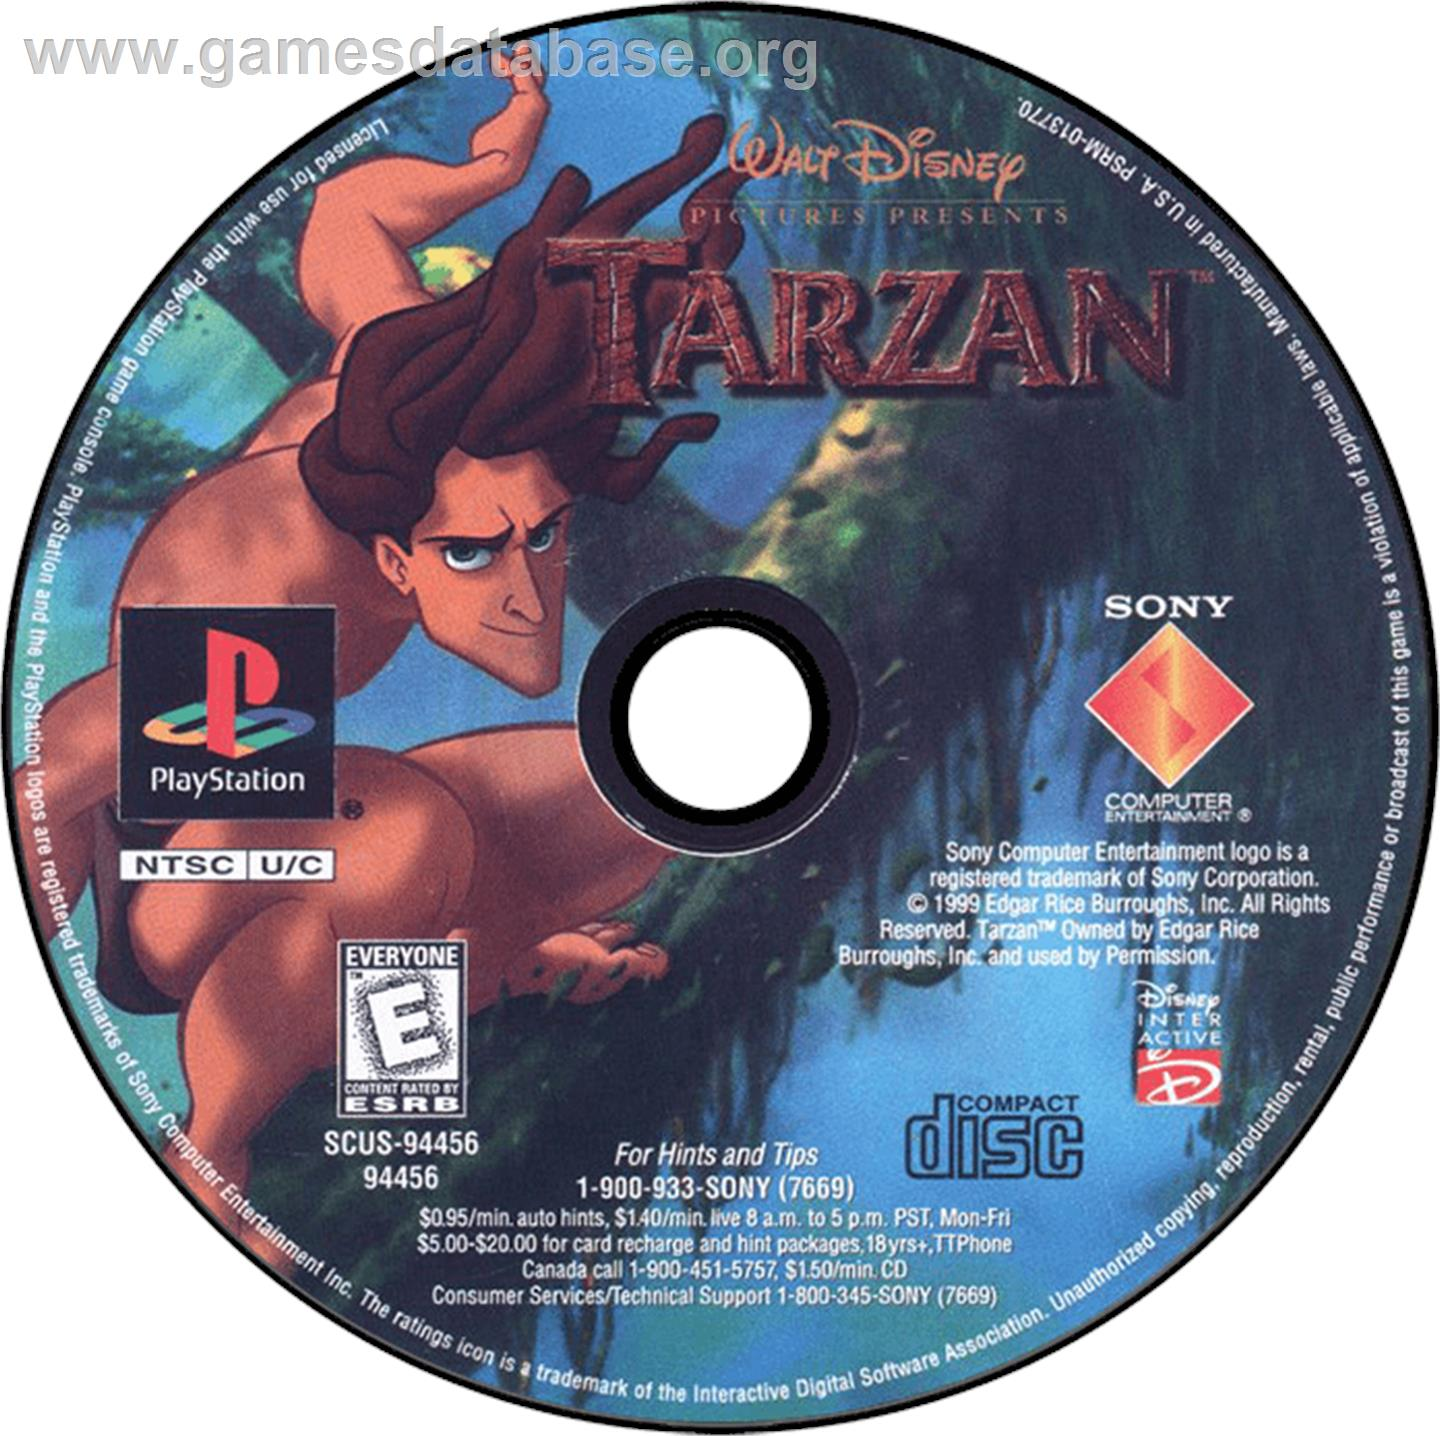 Disney's Tarzan - Sony Playstation - Artwork - CD